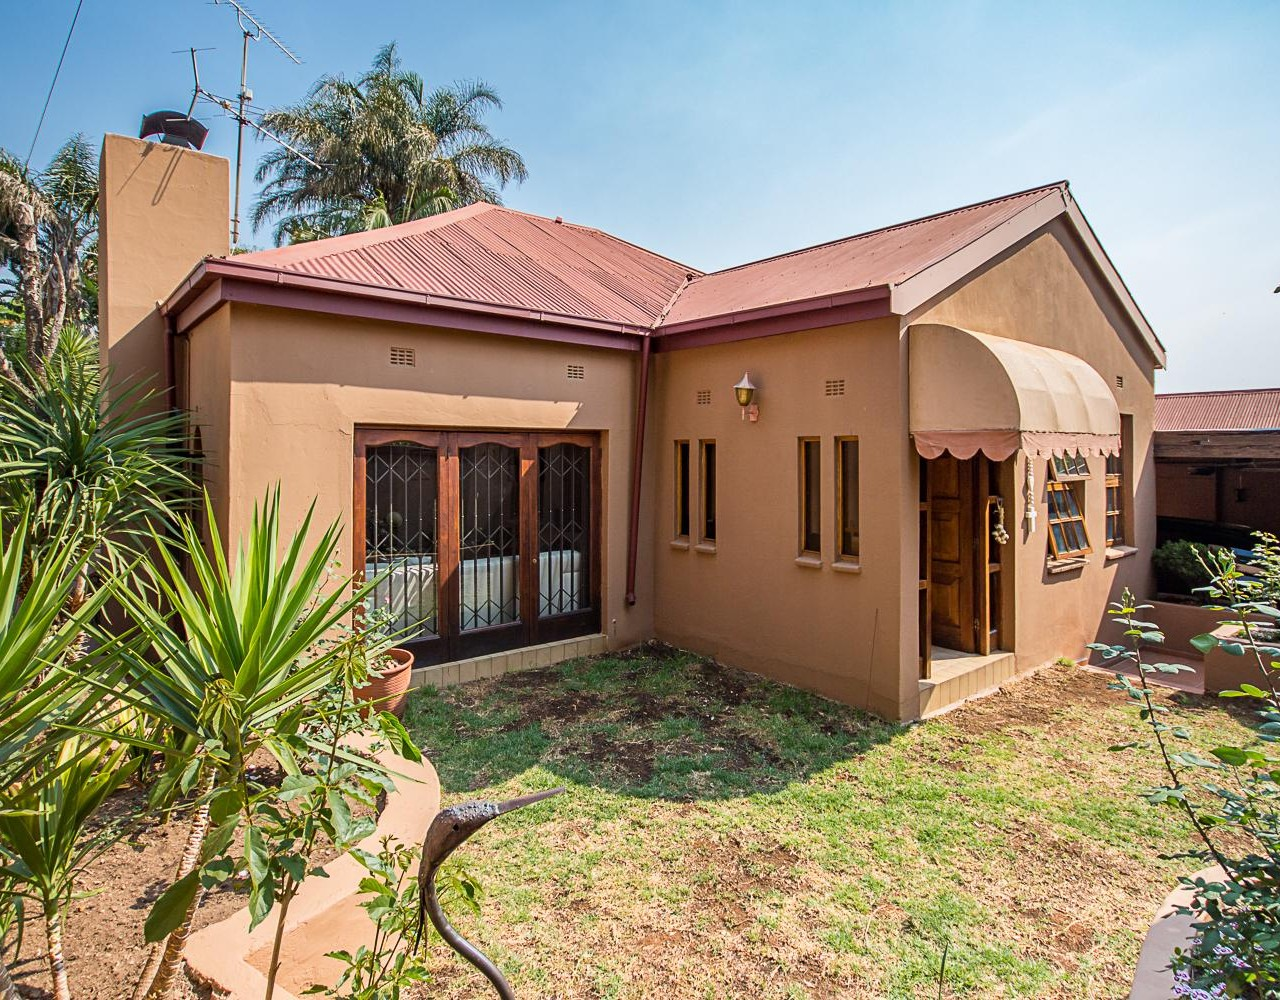 3 Bedroom House For Sale in Norwood | Tyson Properties